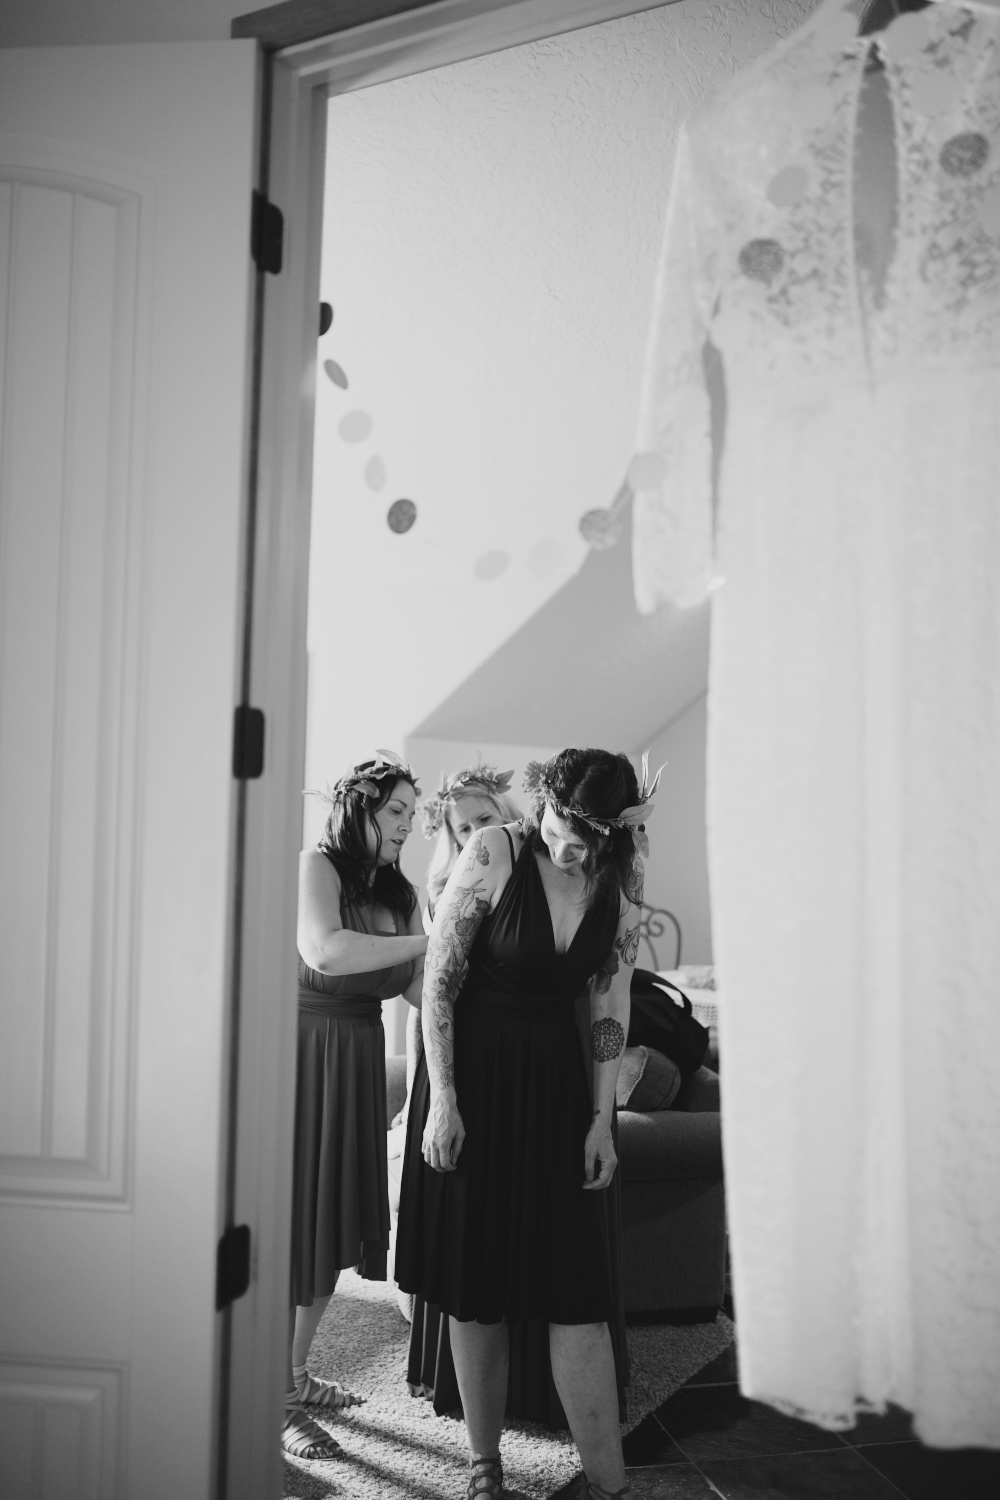 lindseyjane_wedding007.jpg